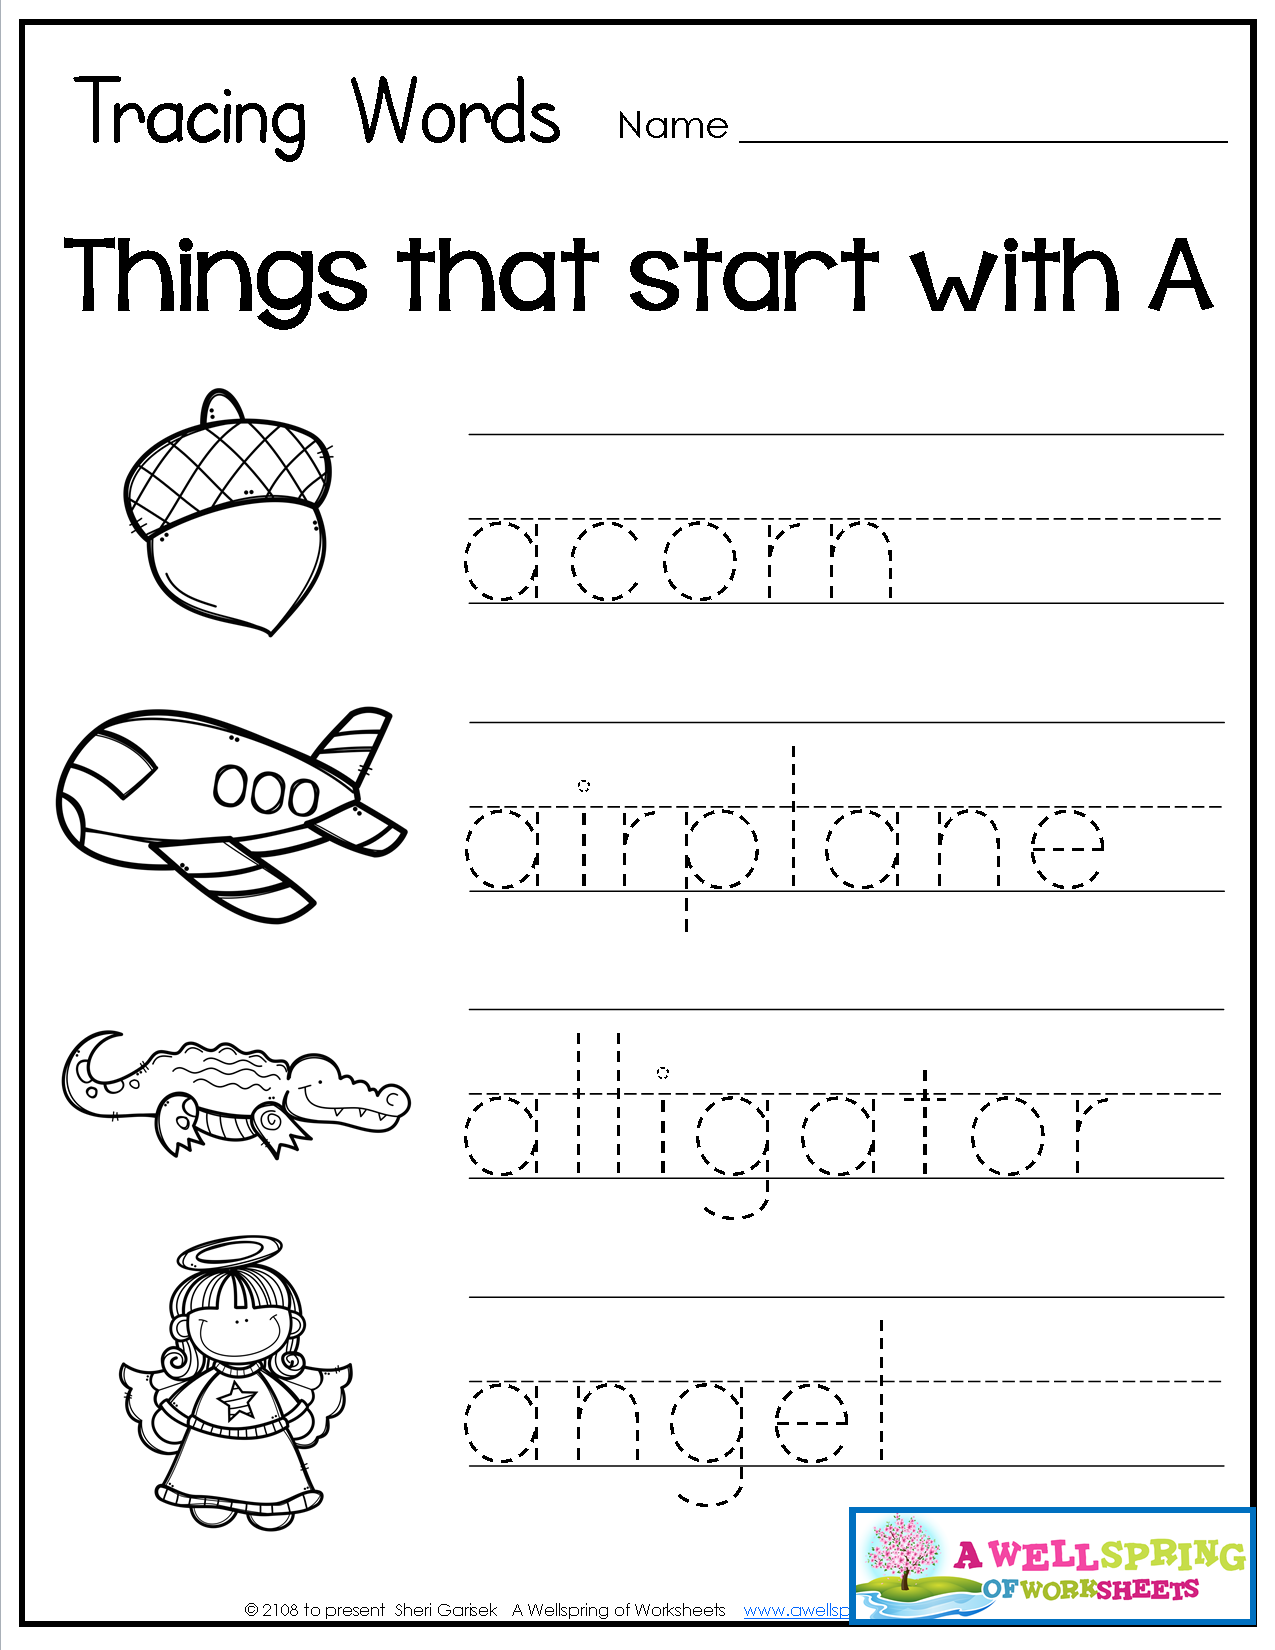 Tracing Words Things that Start with AZ Teaching